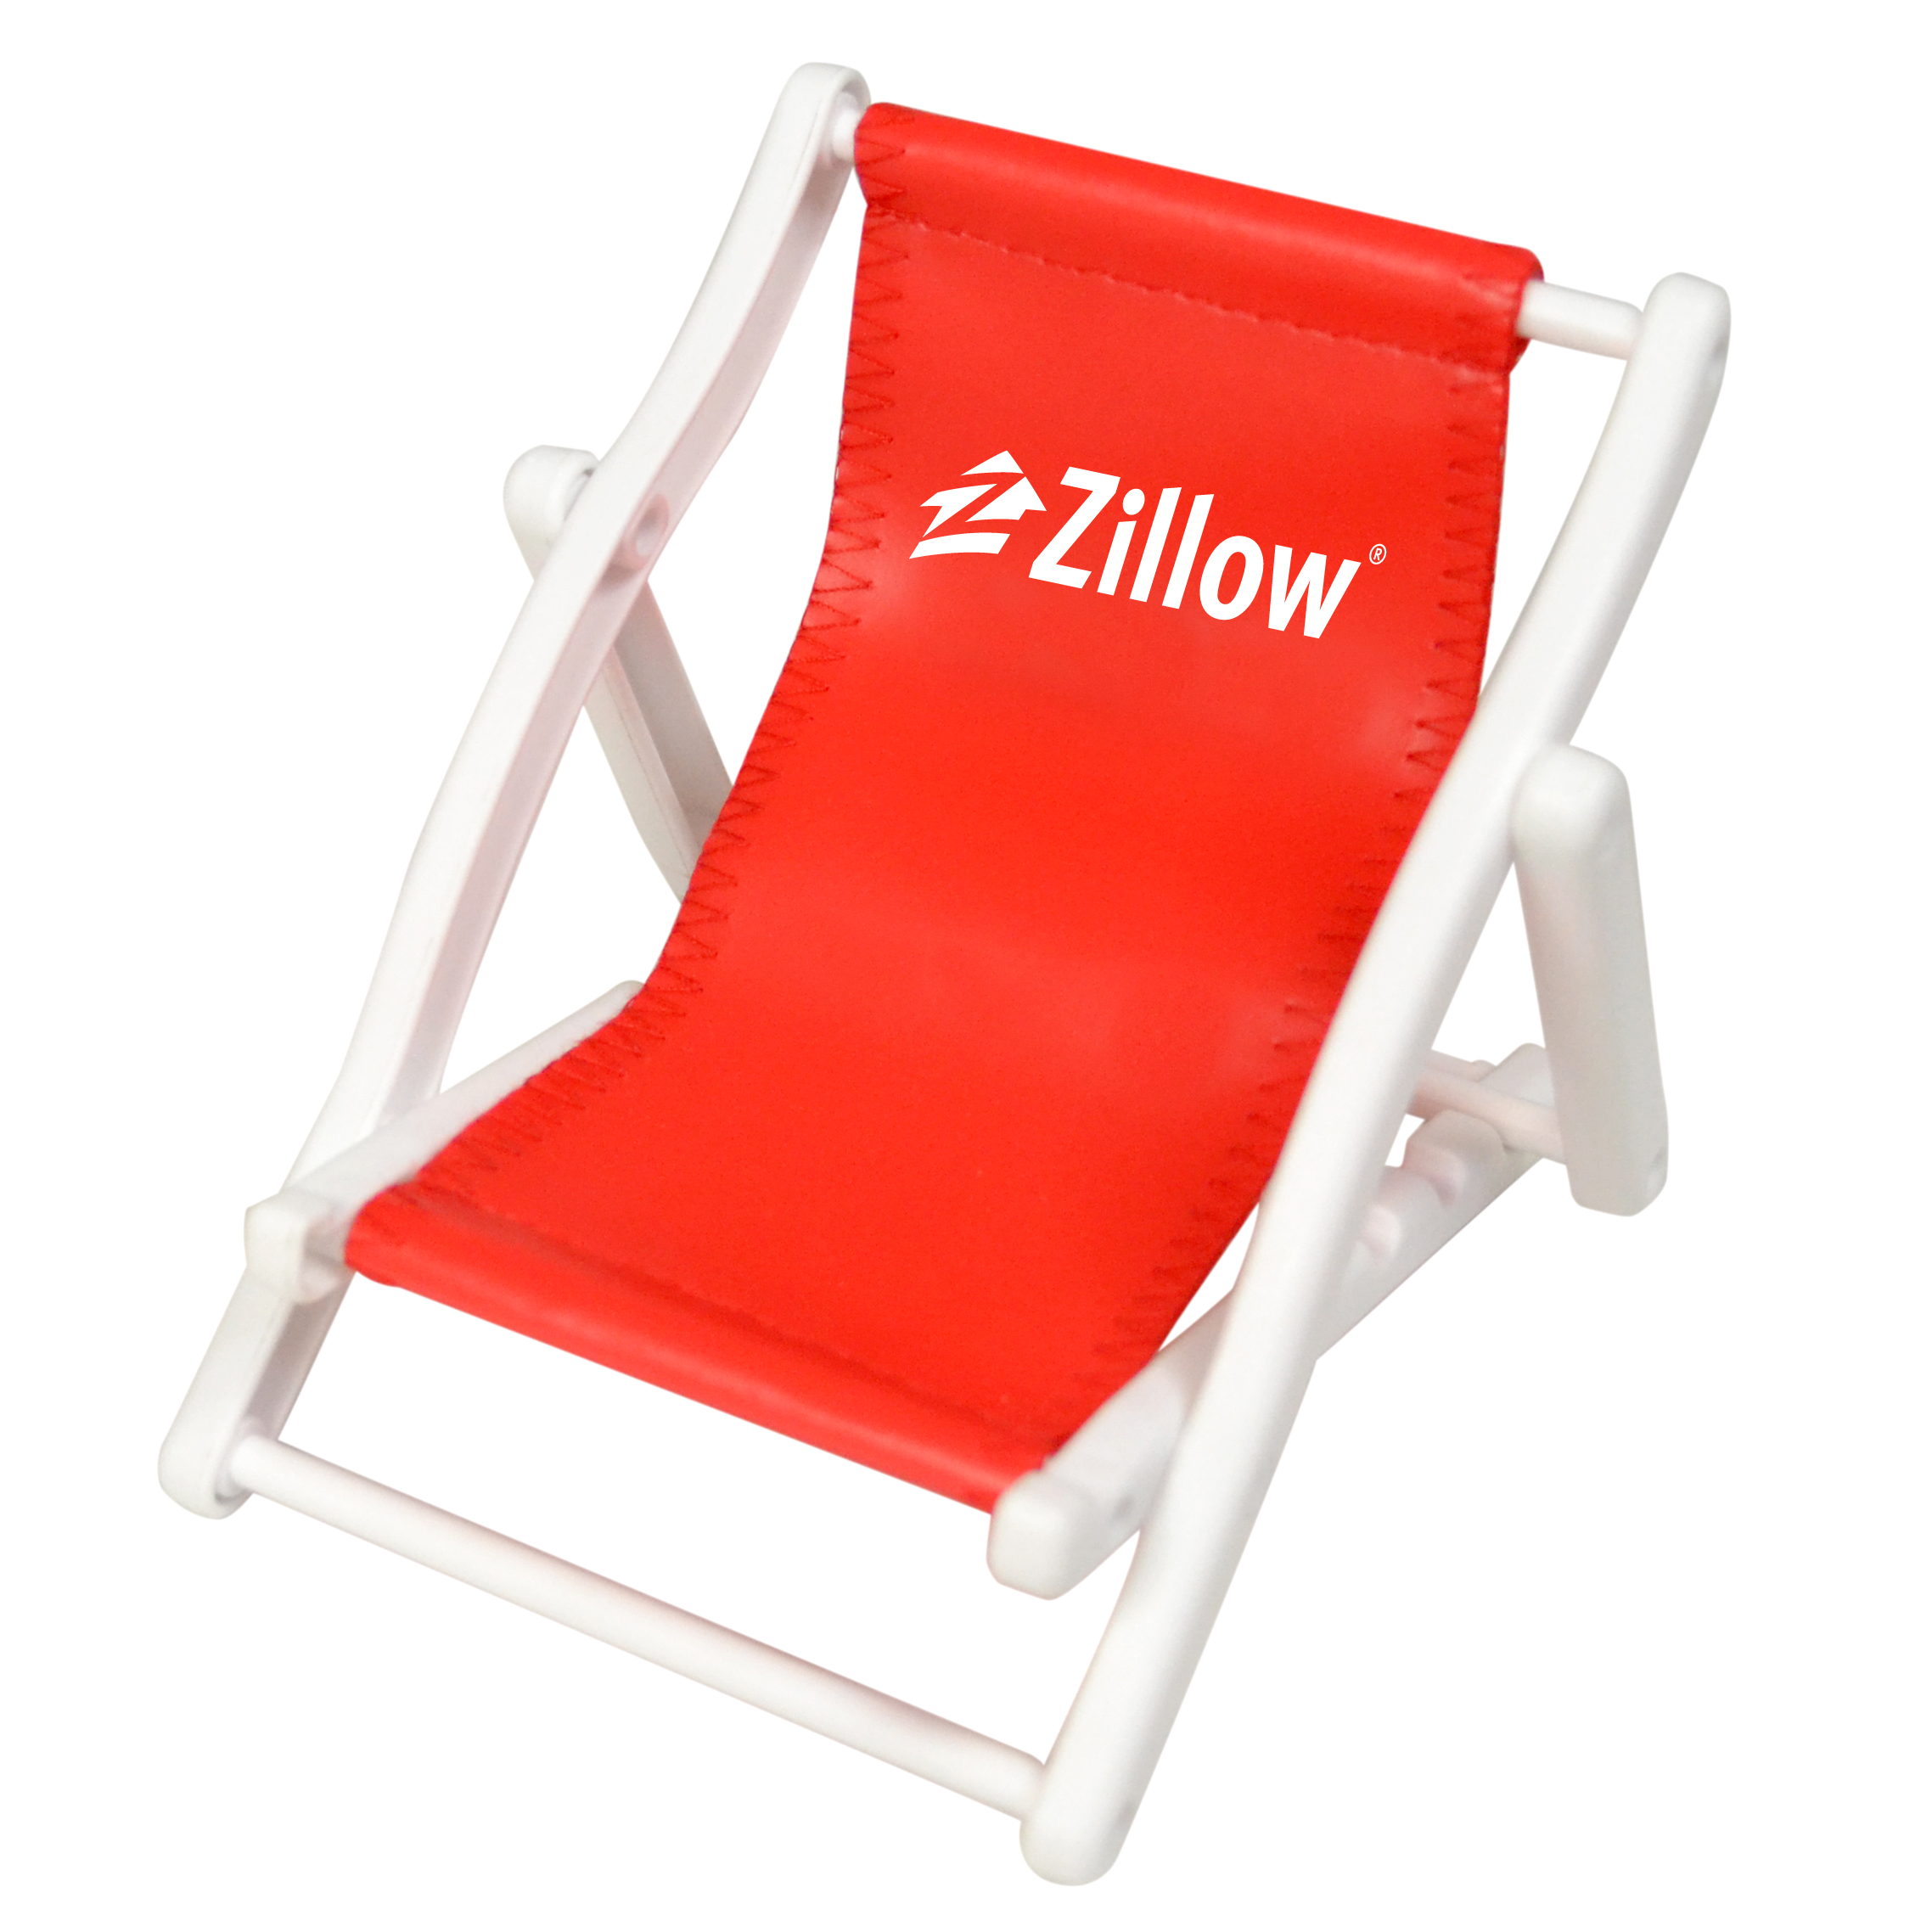 BEACH CHAIR CELL PHONE HOLDER